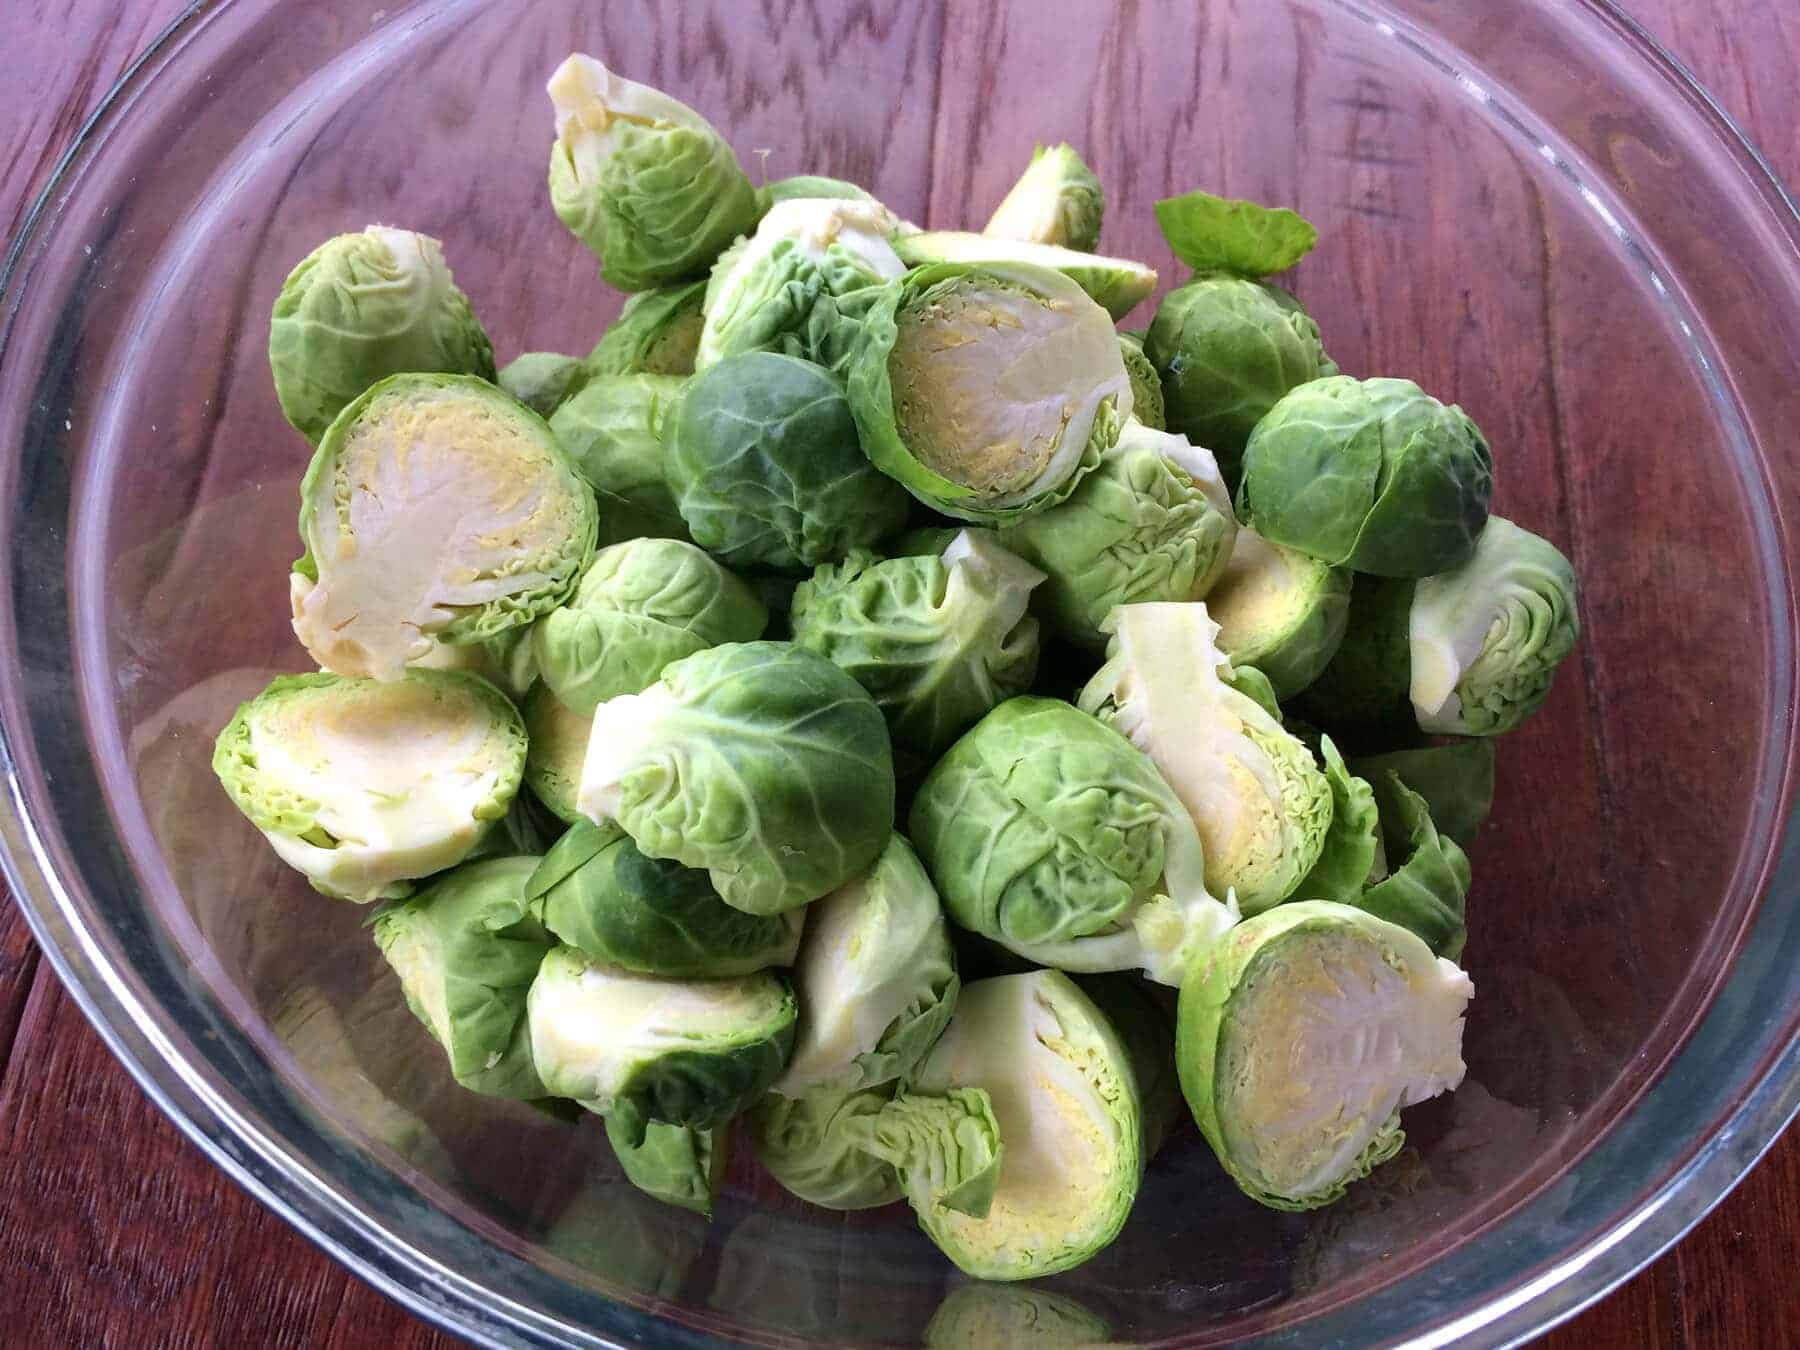 roasted-brussels-sprouts-prep-2